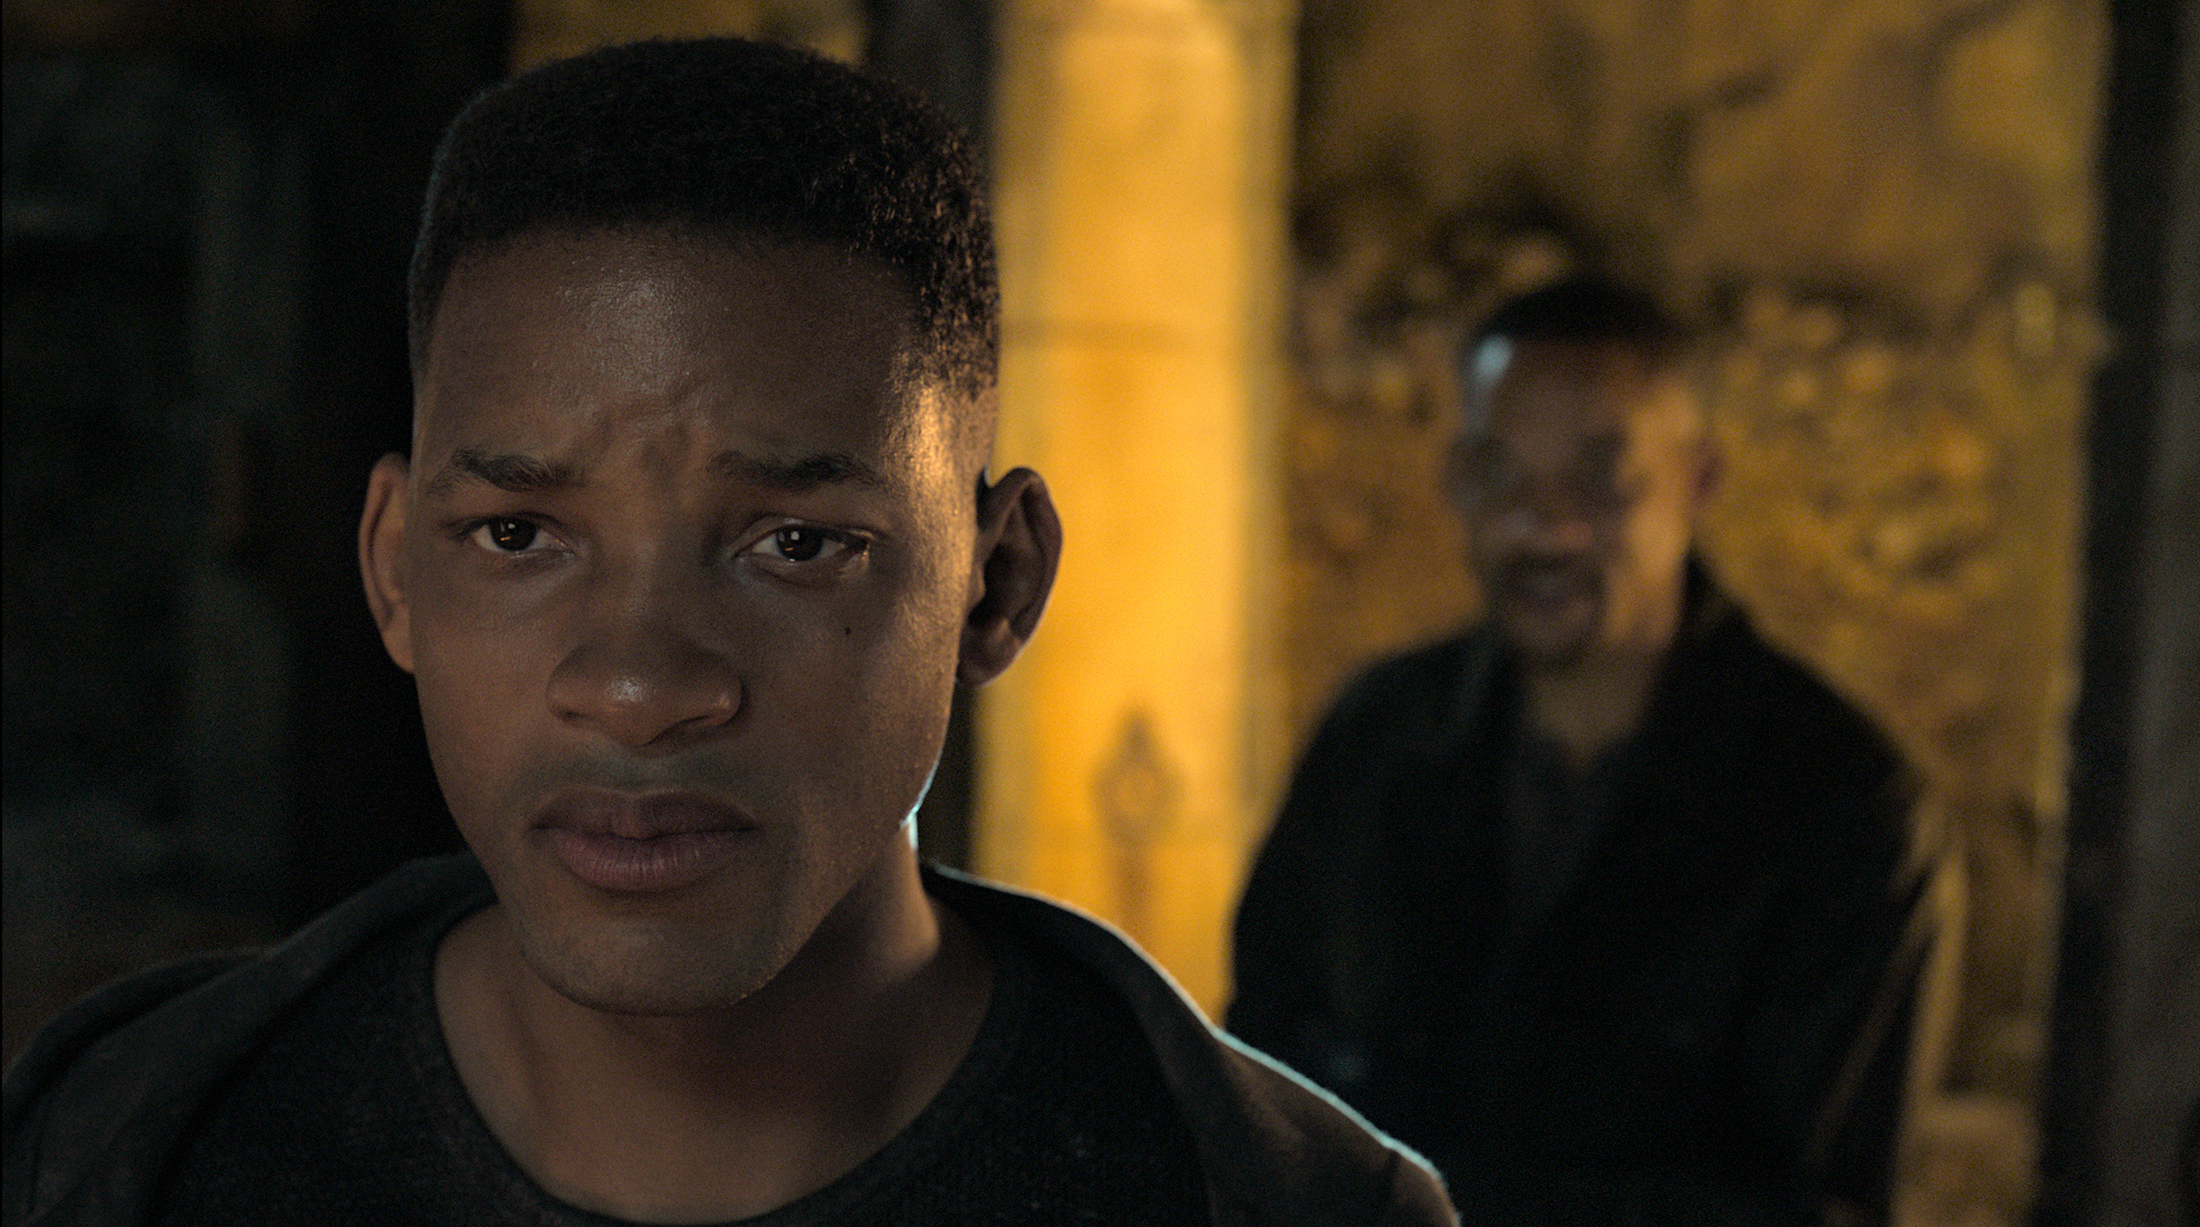 a young will smith stands with his back turned to his present day self